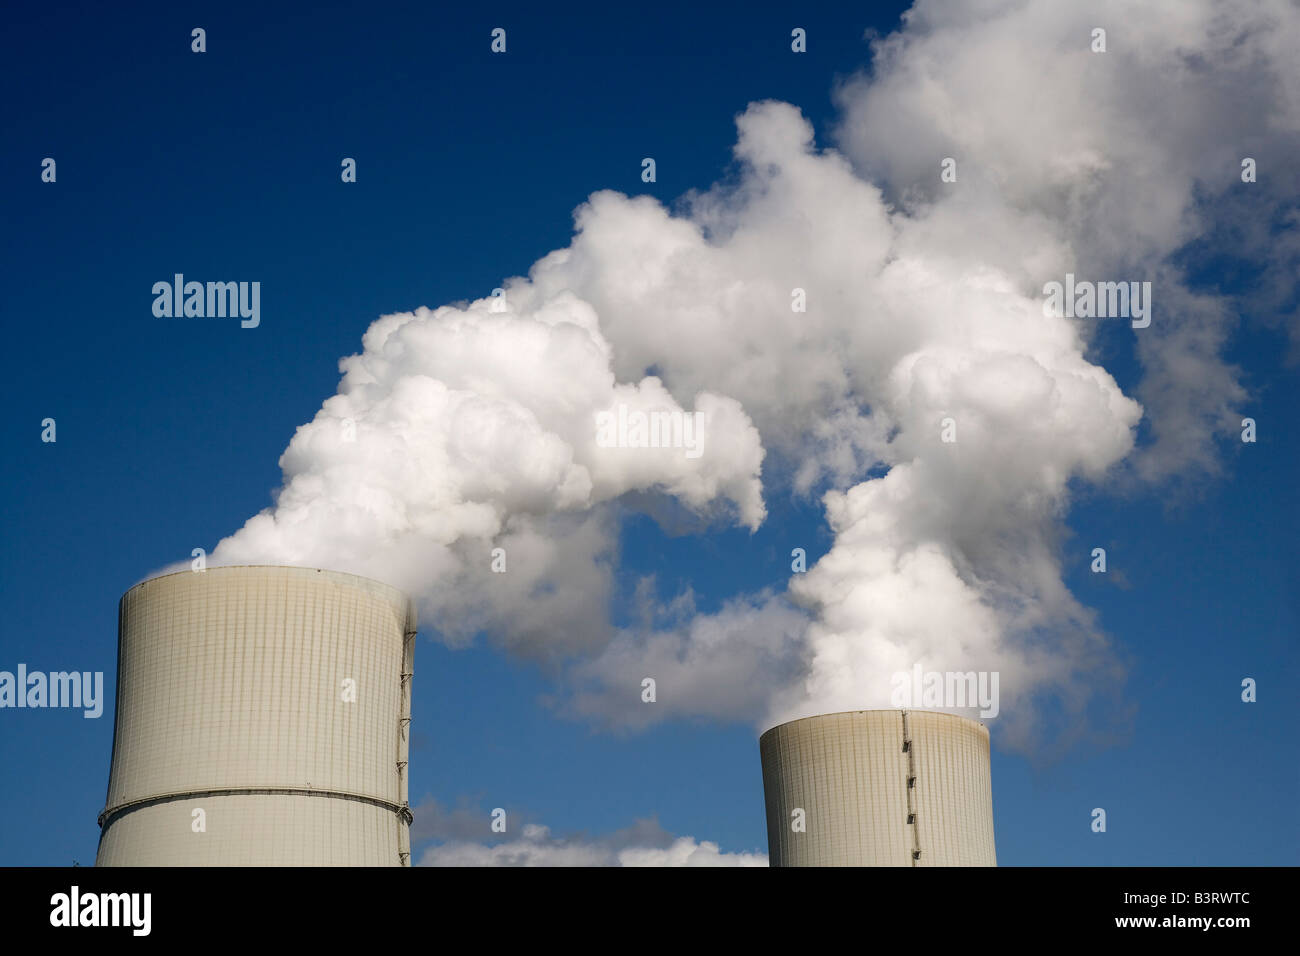 First brown coal power plant in the world with carbon dioxide separation via CCS technology Carbon Capture and Storage - Stock Image